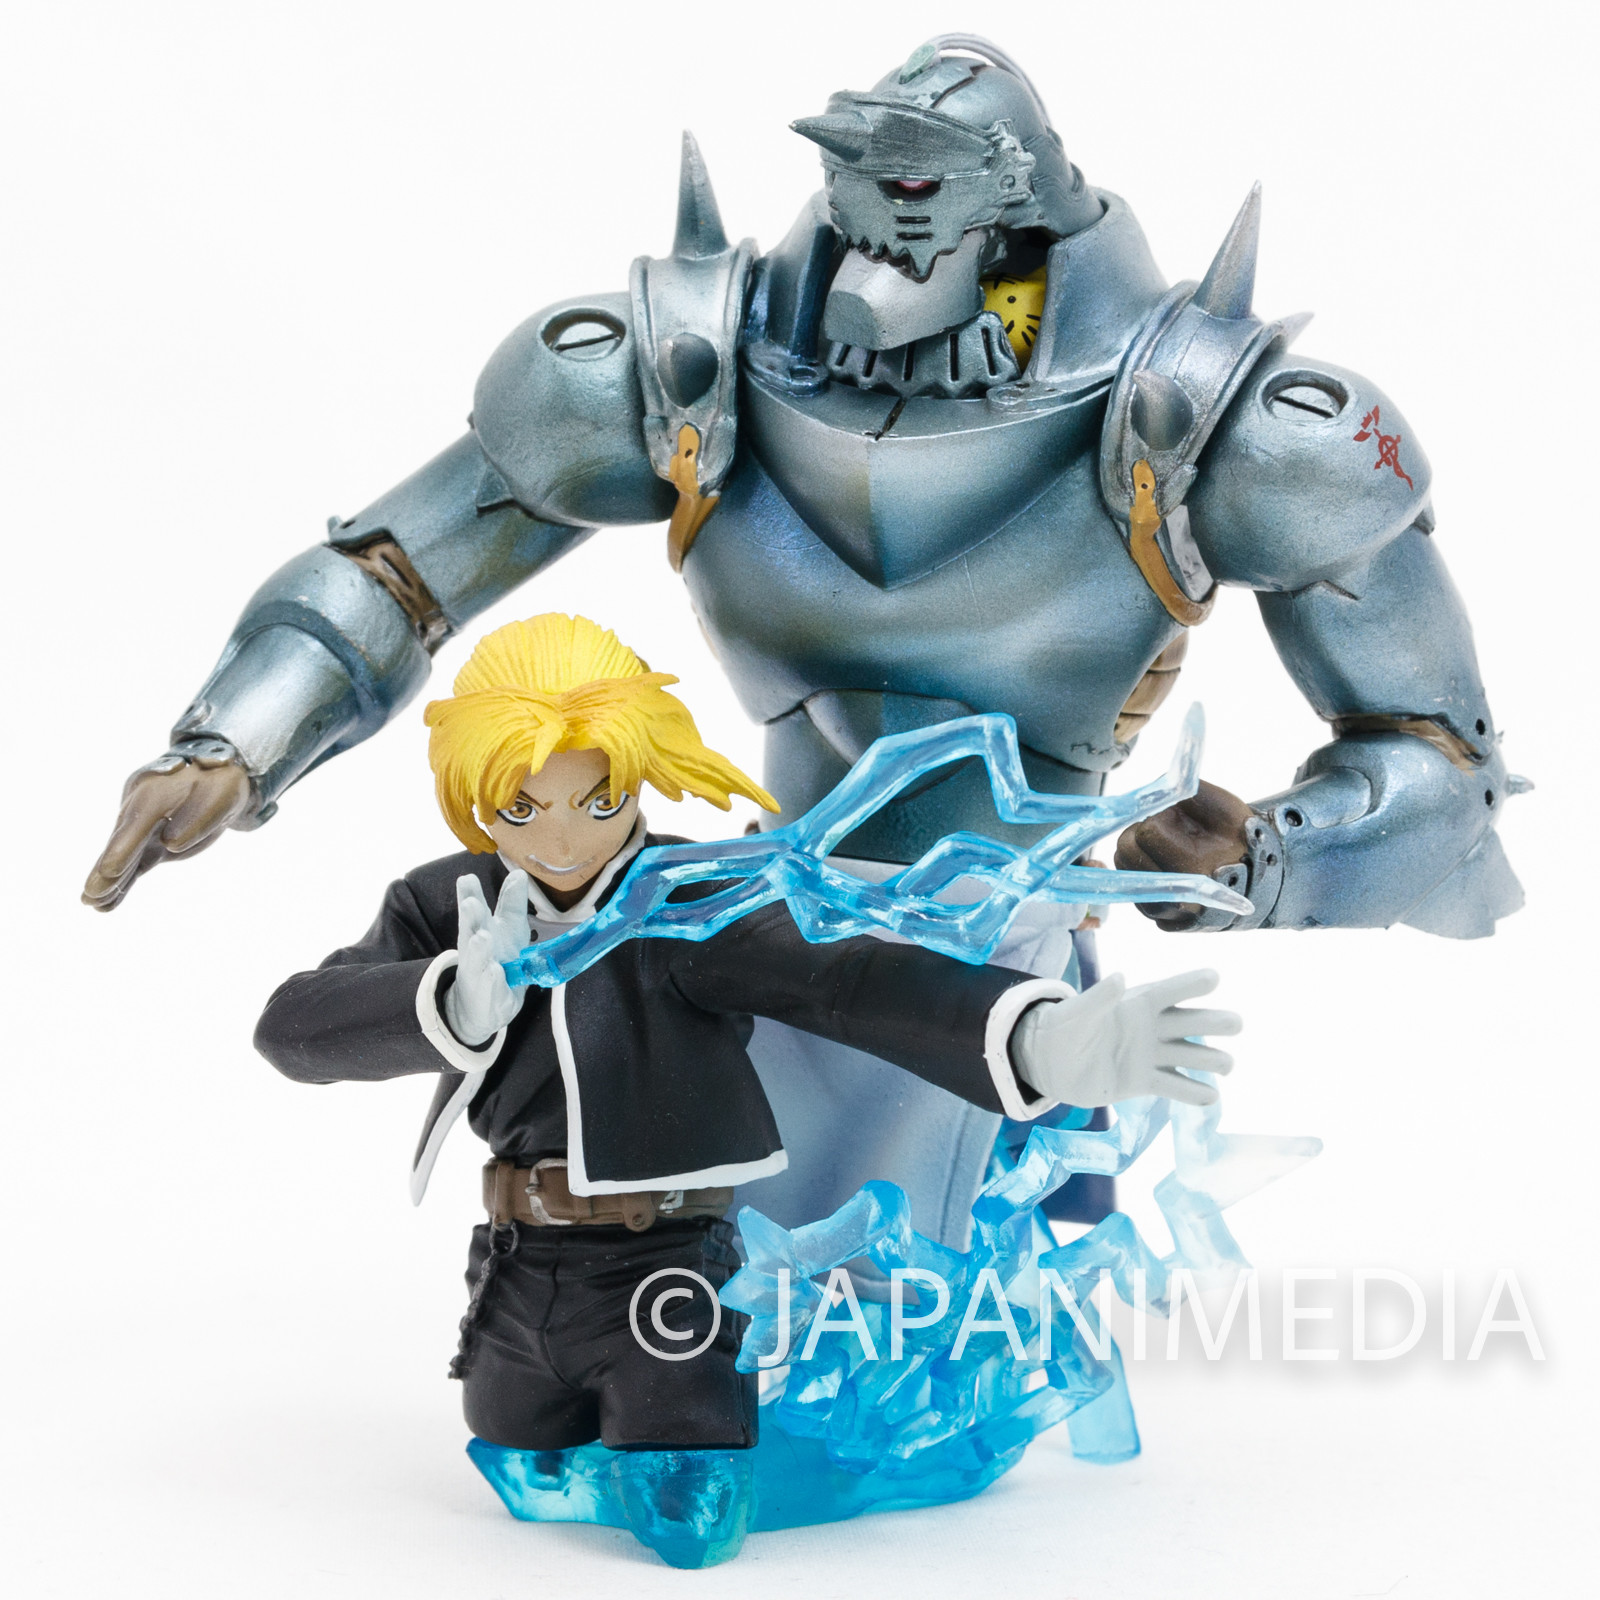 Fullmetal Alchemist Mini Diorama Figure Edward Elric and Alphonse